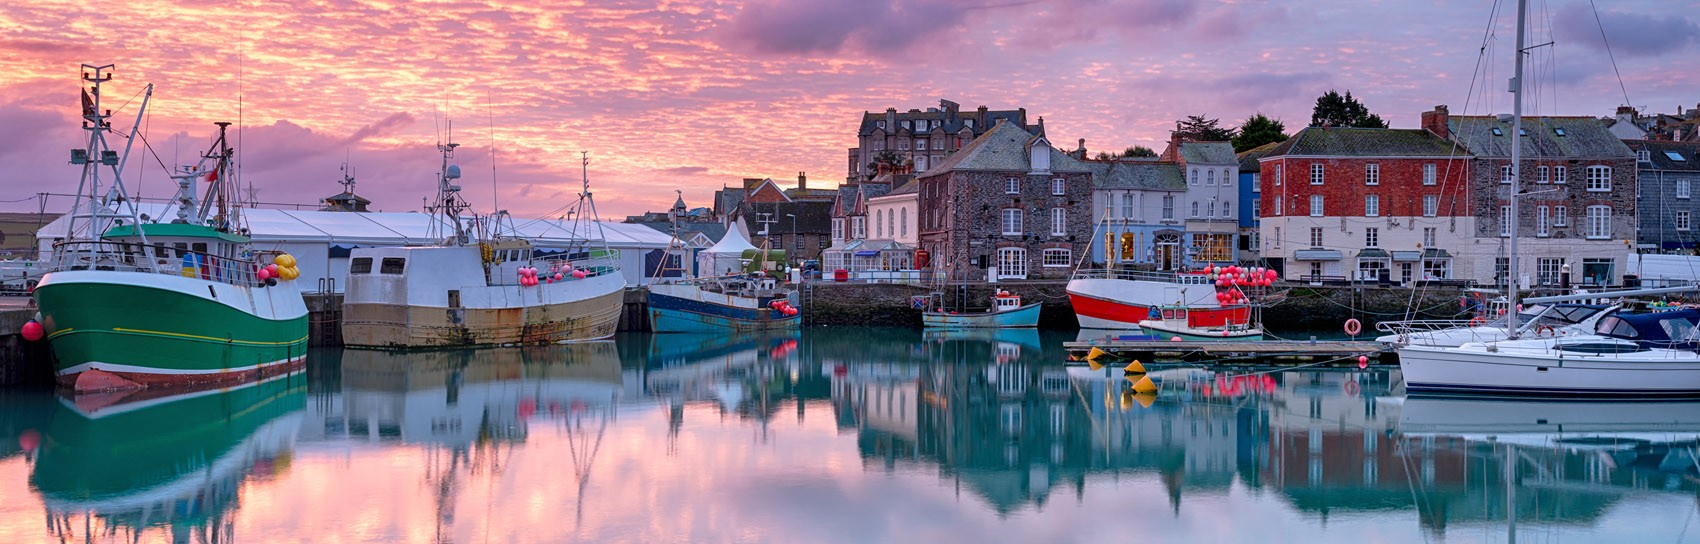 Sunrise in Padstow in Cornwall. Photograph by HELEN HOTSON